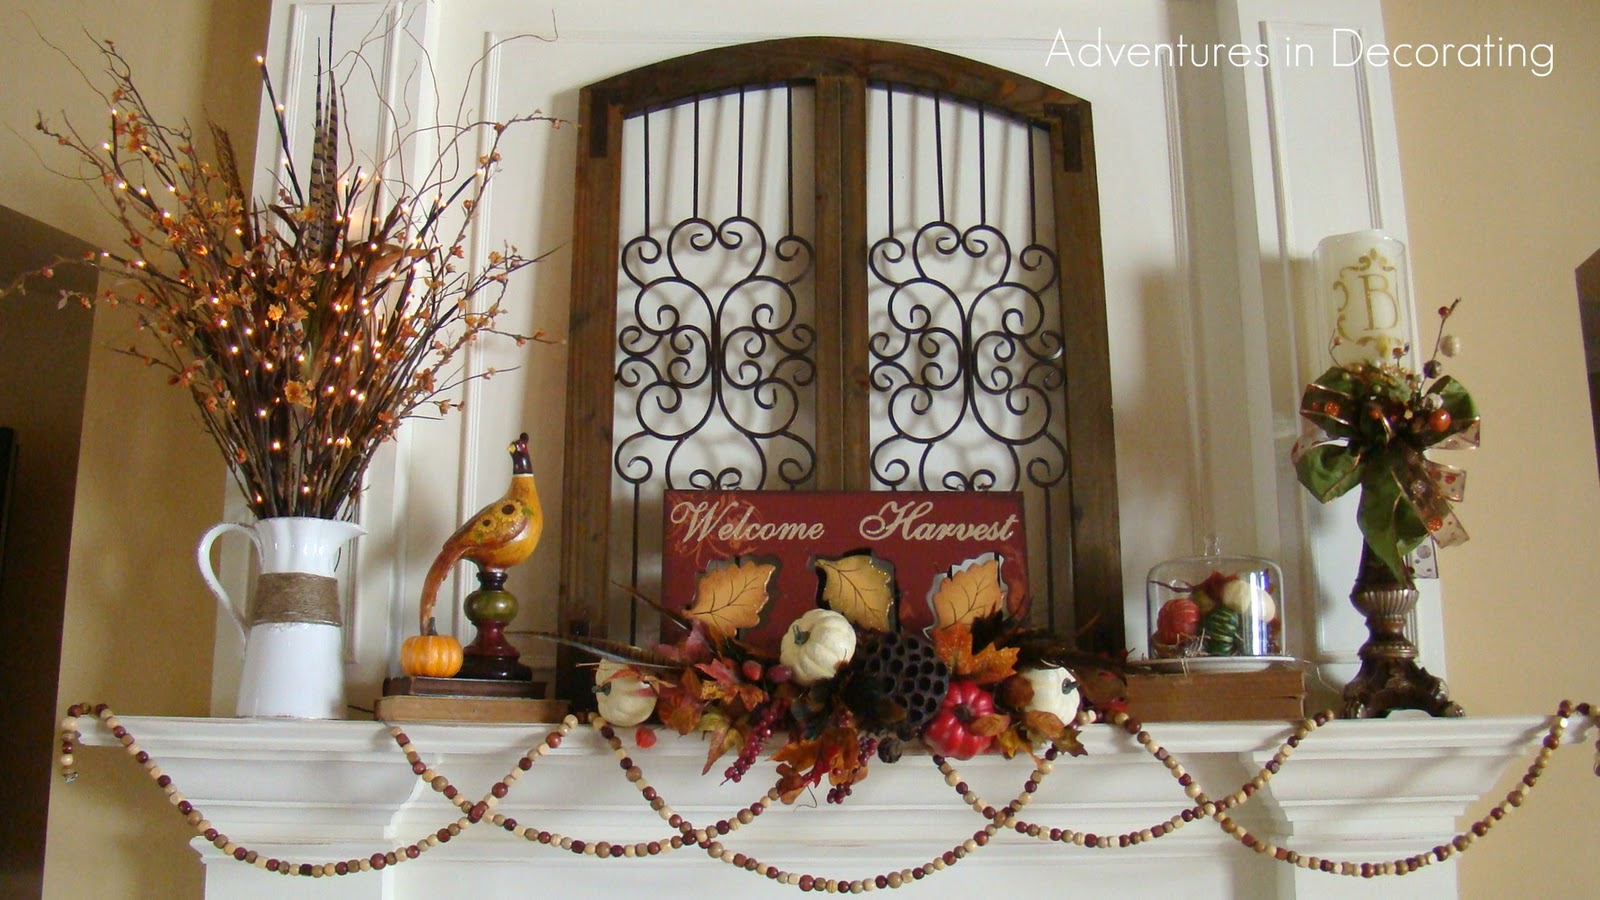 Adventures in decorating our quoti give upquot fall mantel for Fall mantel decor